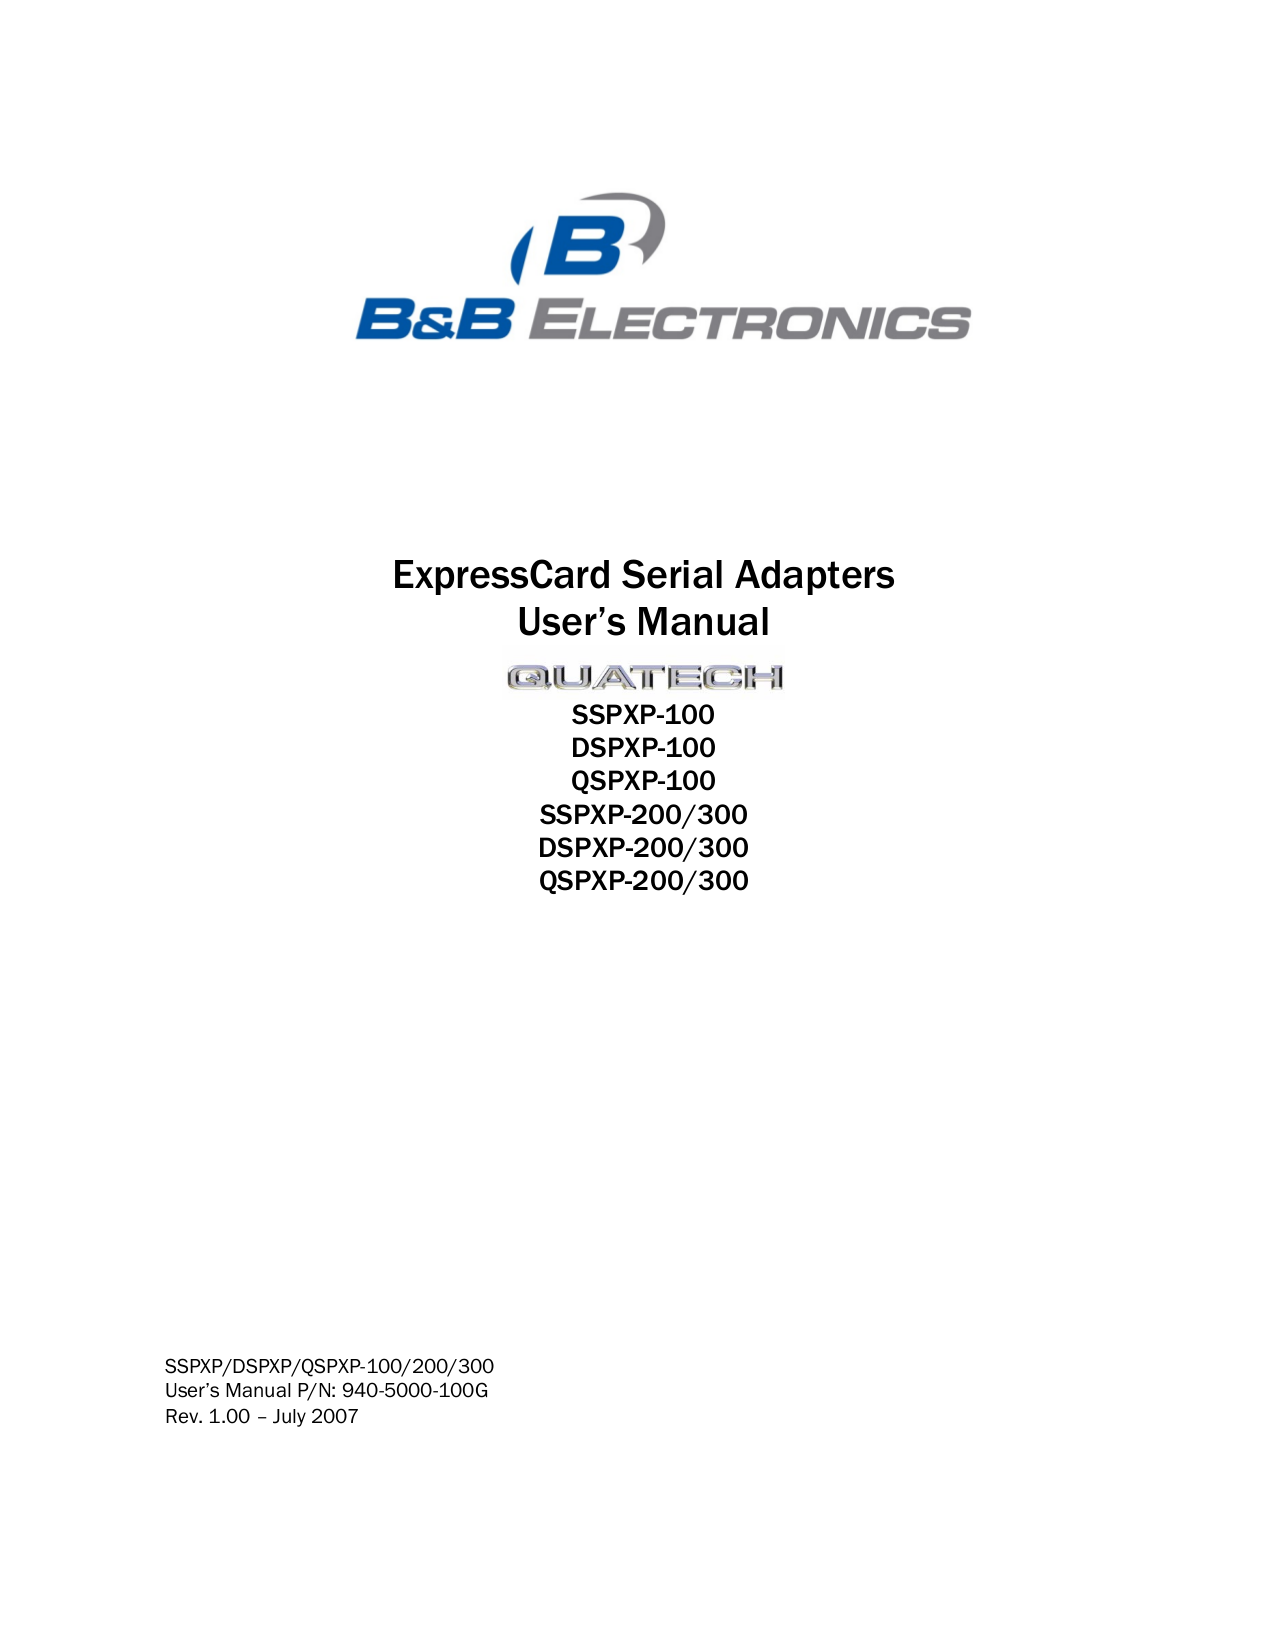 pdf for Quatech Other DSPXP-200 PCI Express Devices manual